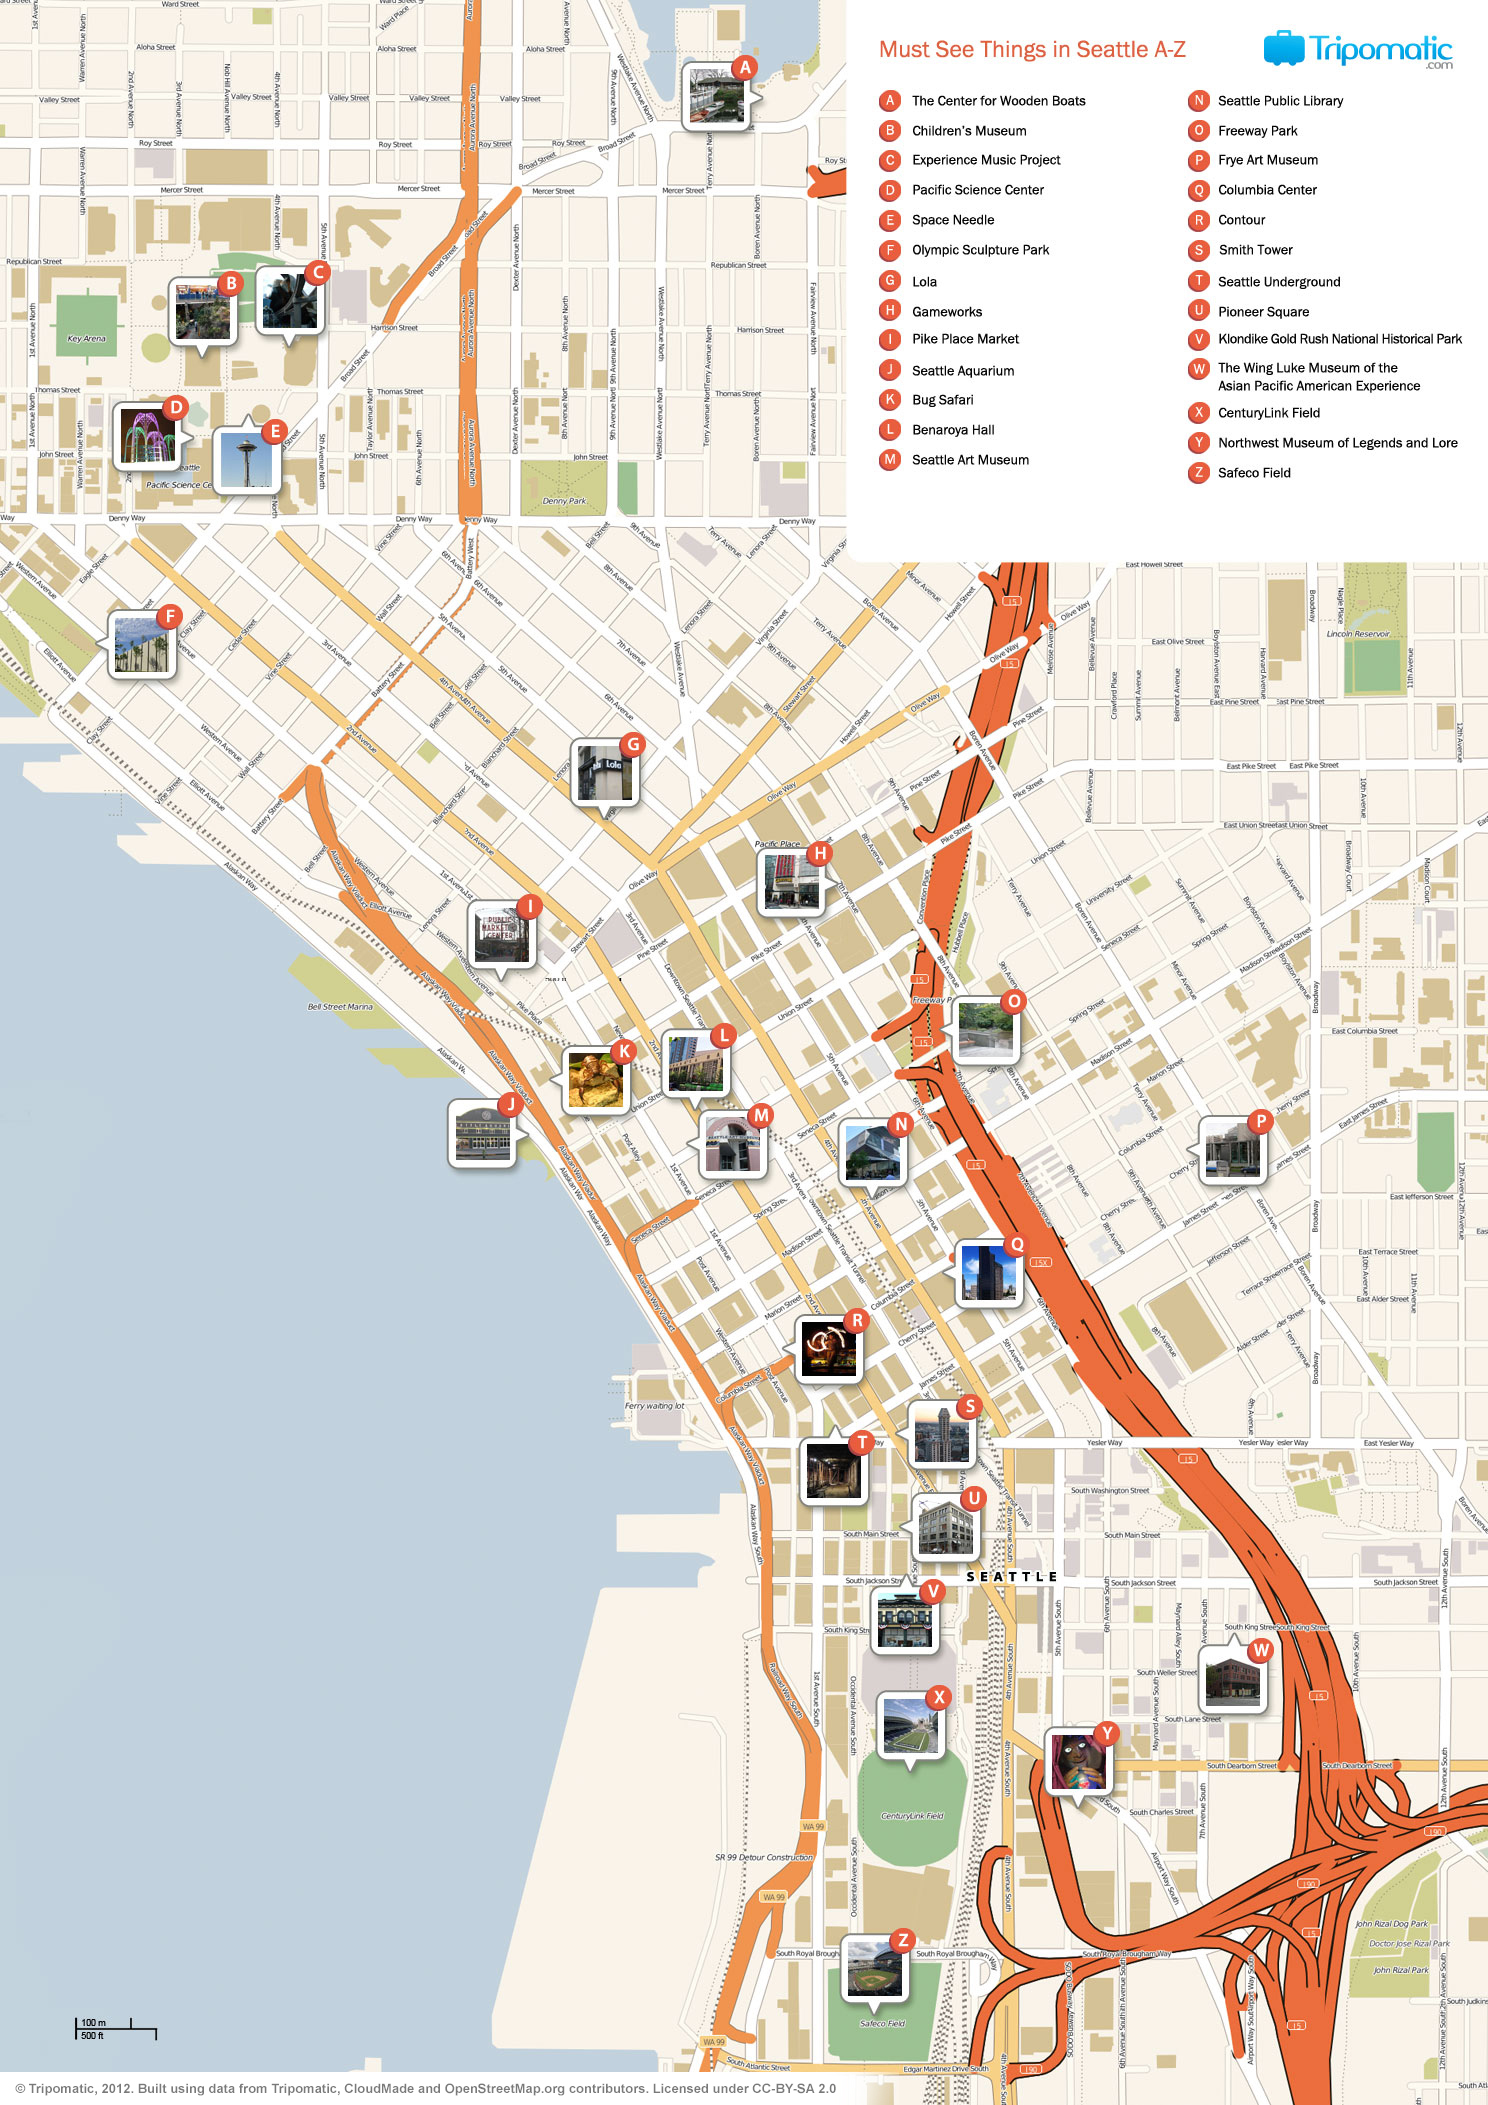 FileSeattle printable tourist attractions mapjpg Wikimedia Commons – Seattle Tourist Map